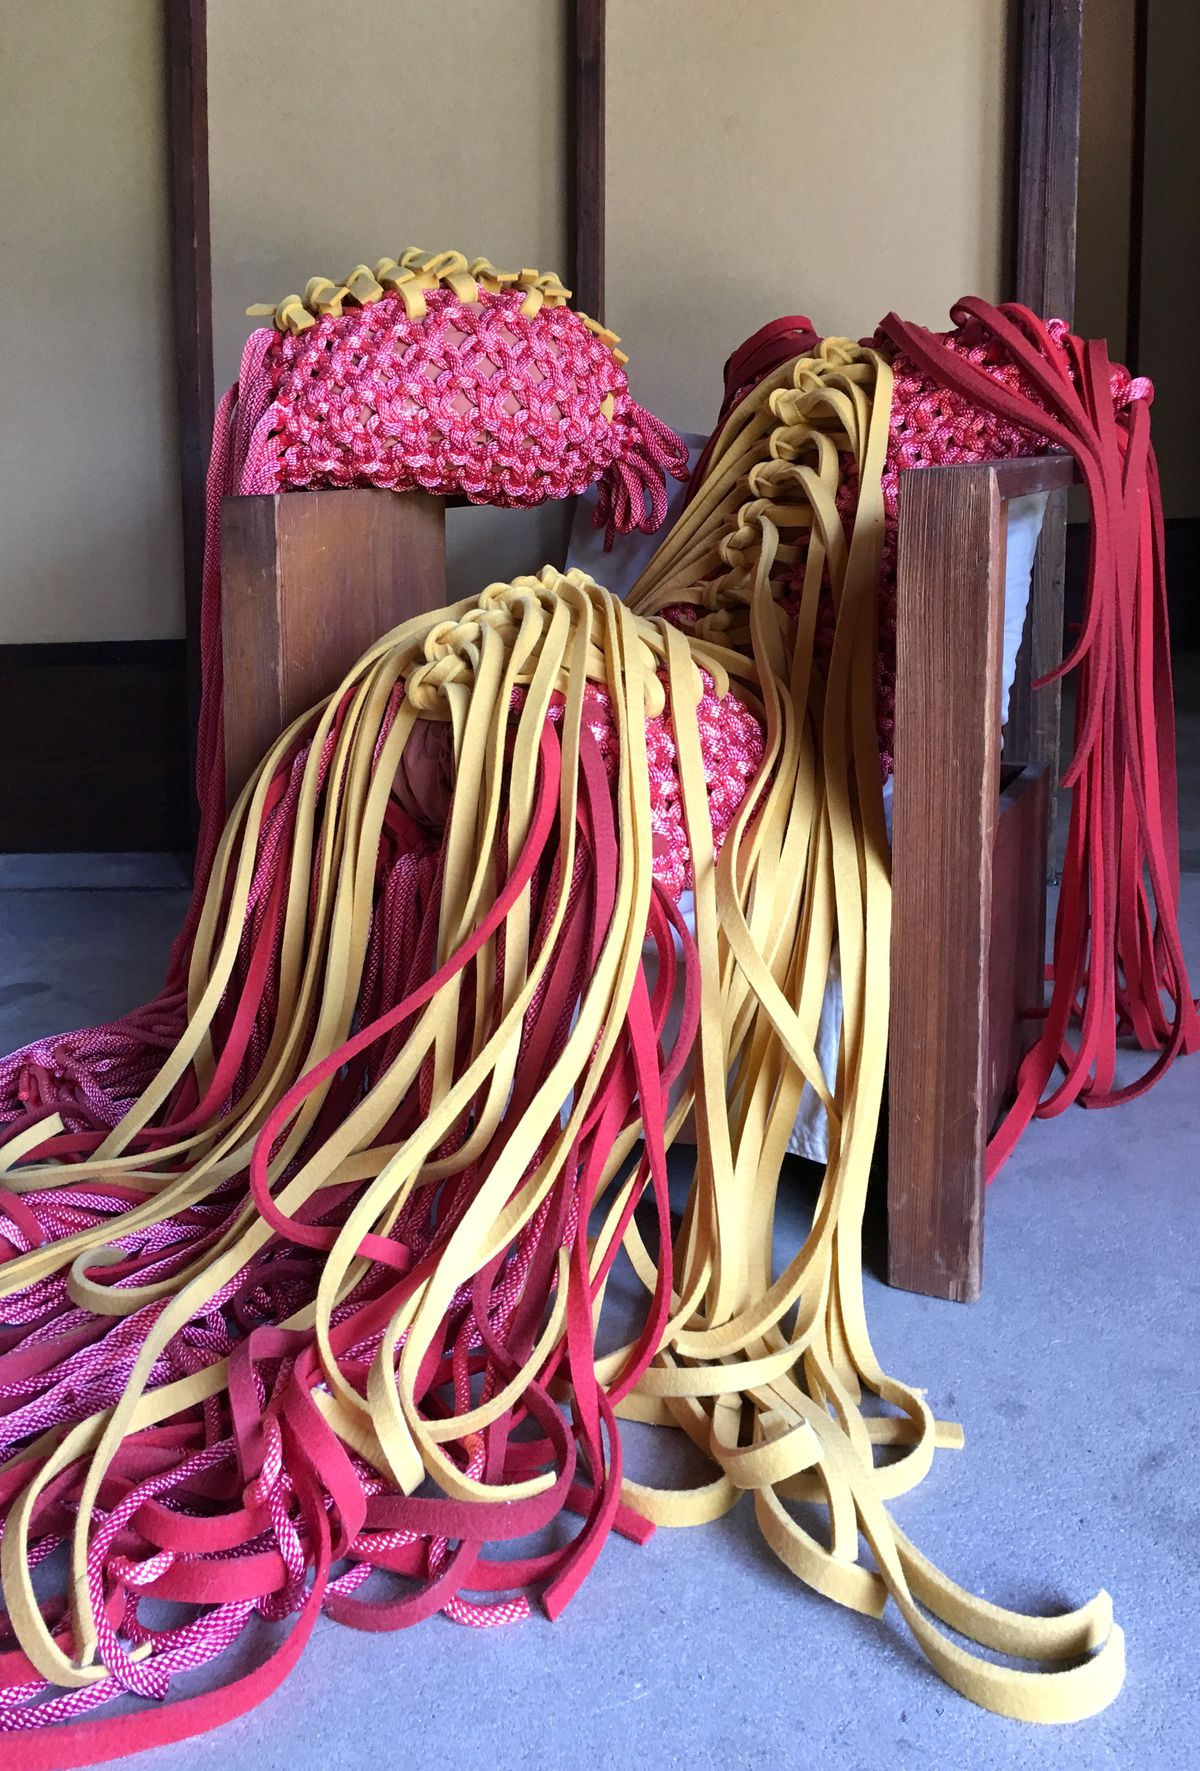 A detail of an exhibition shows intricate knots and long strips of soft red and yellow felt and slick nylon rope woven into intricate knots.